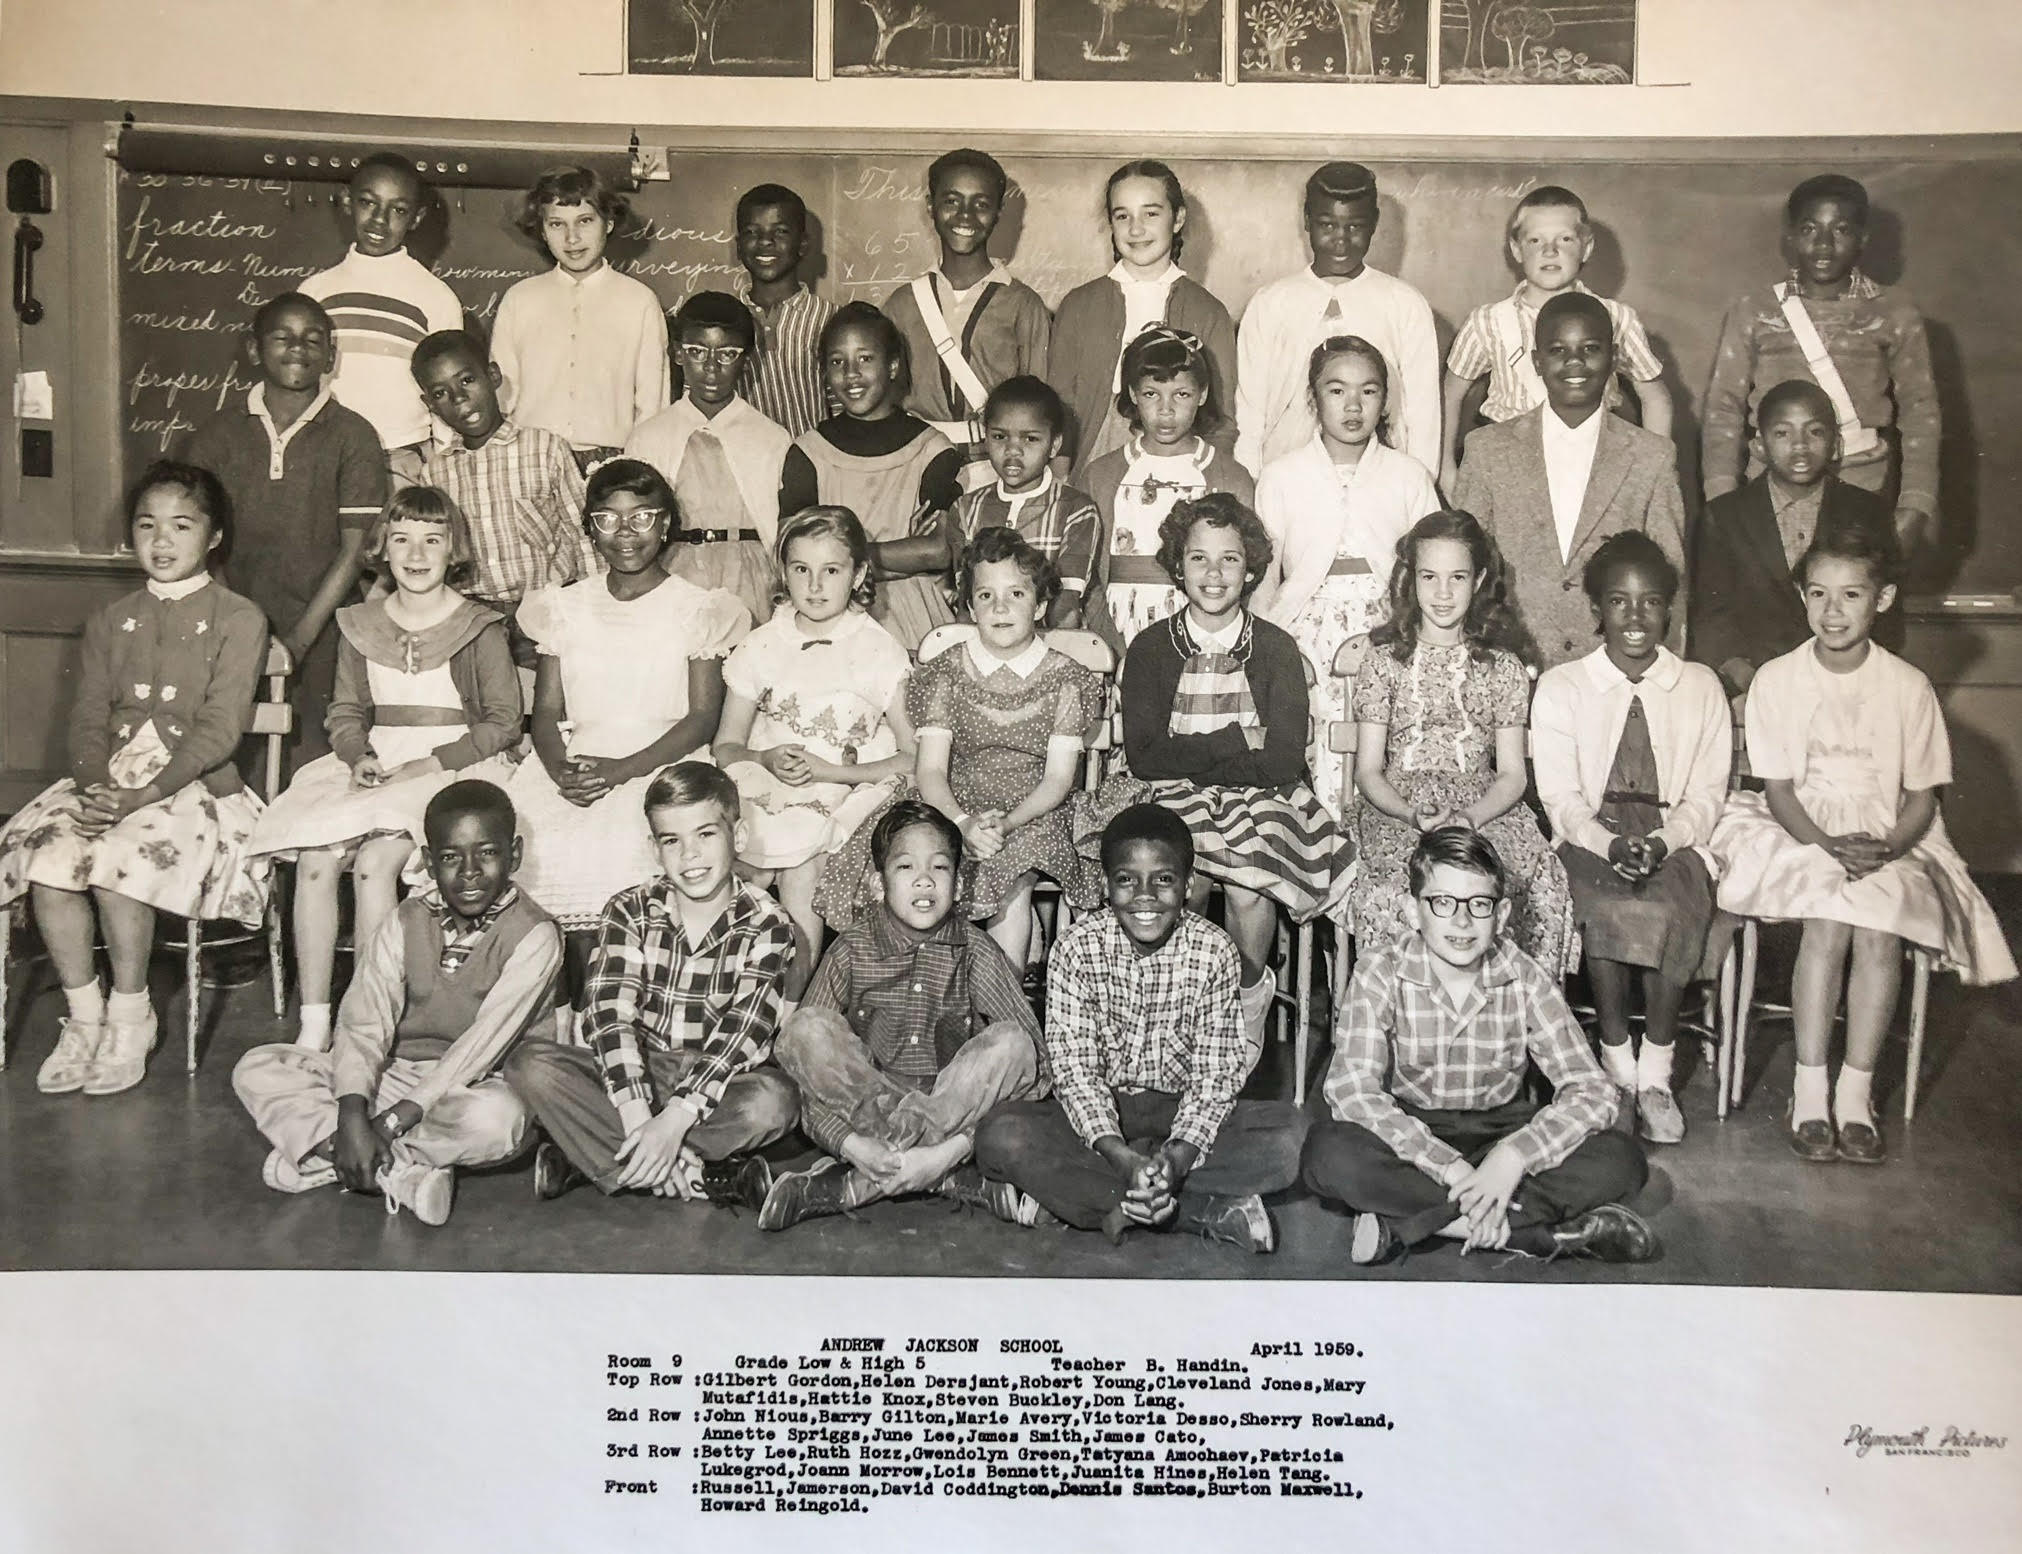 Tania, third row, fourth from left. Sherry Rowland, second row, fifth from left. Burton Maxwell, front row, fourth from left.